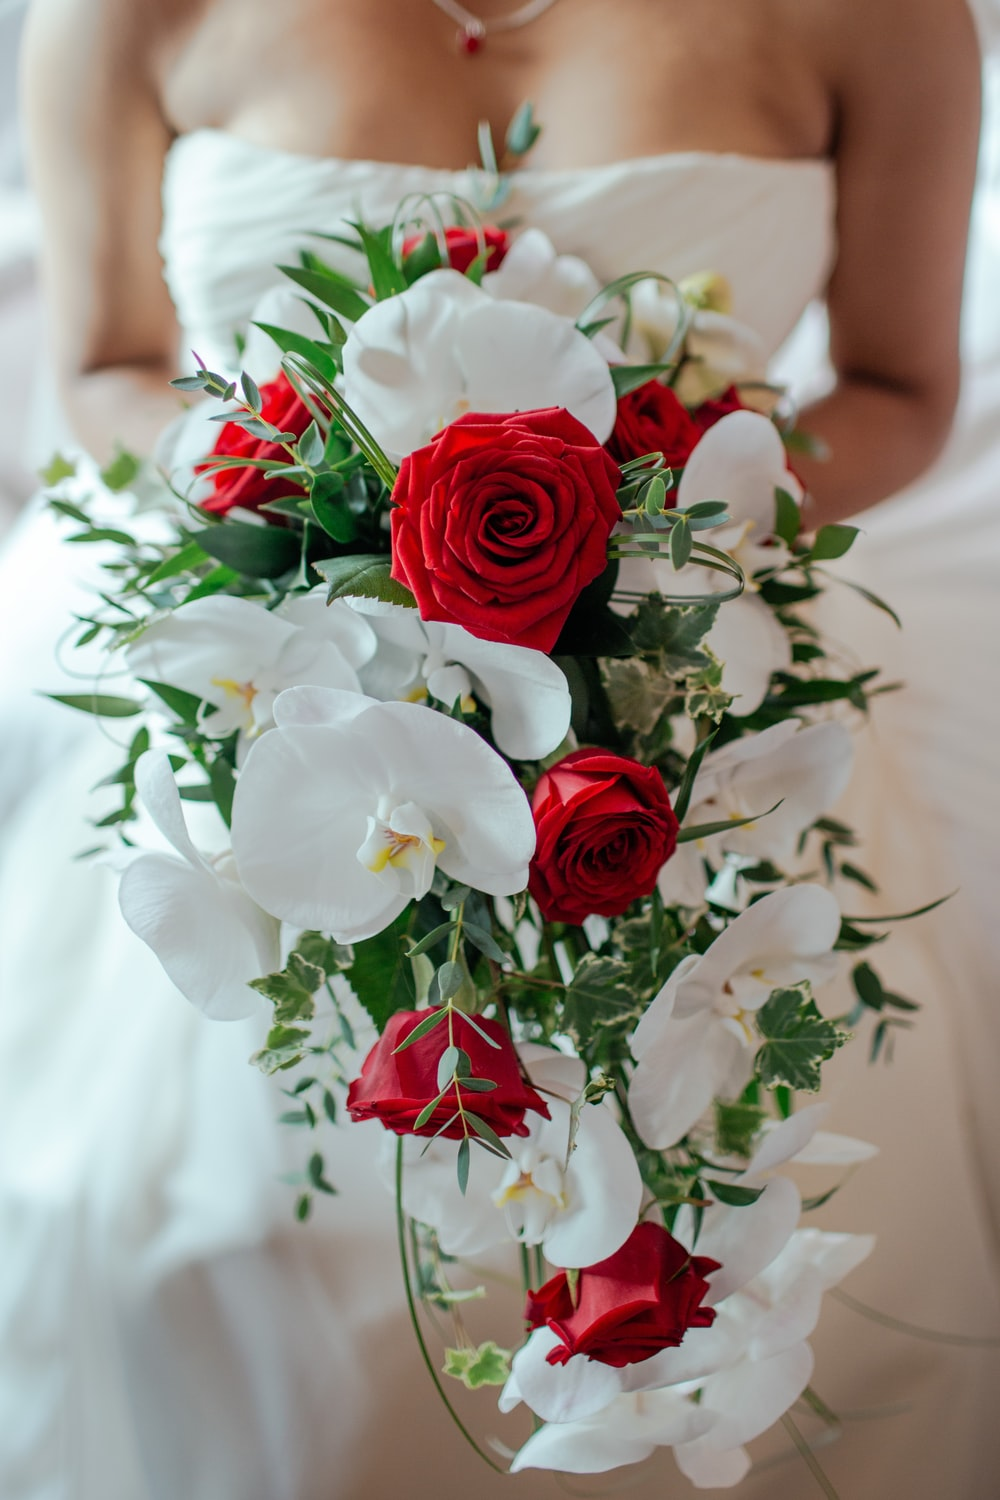 Stunning Red And White Bouquet Photo By Thomas Ae Thomasae On